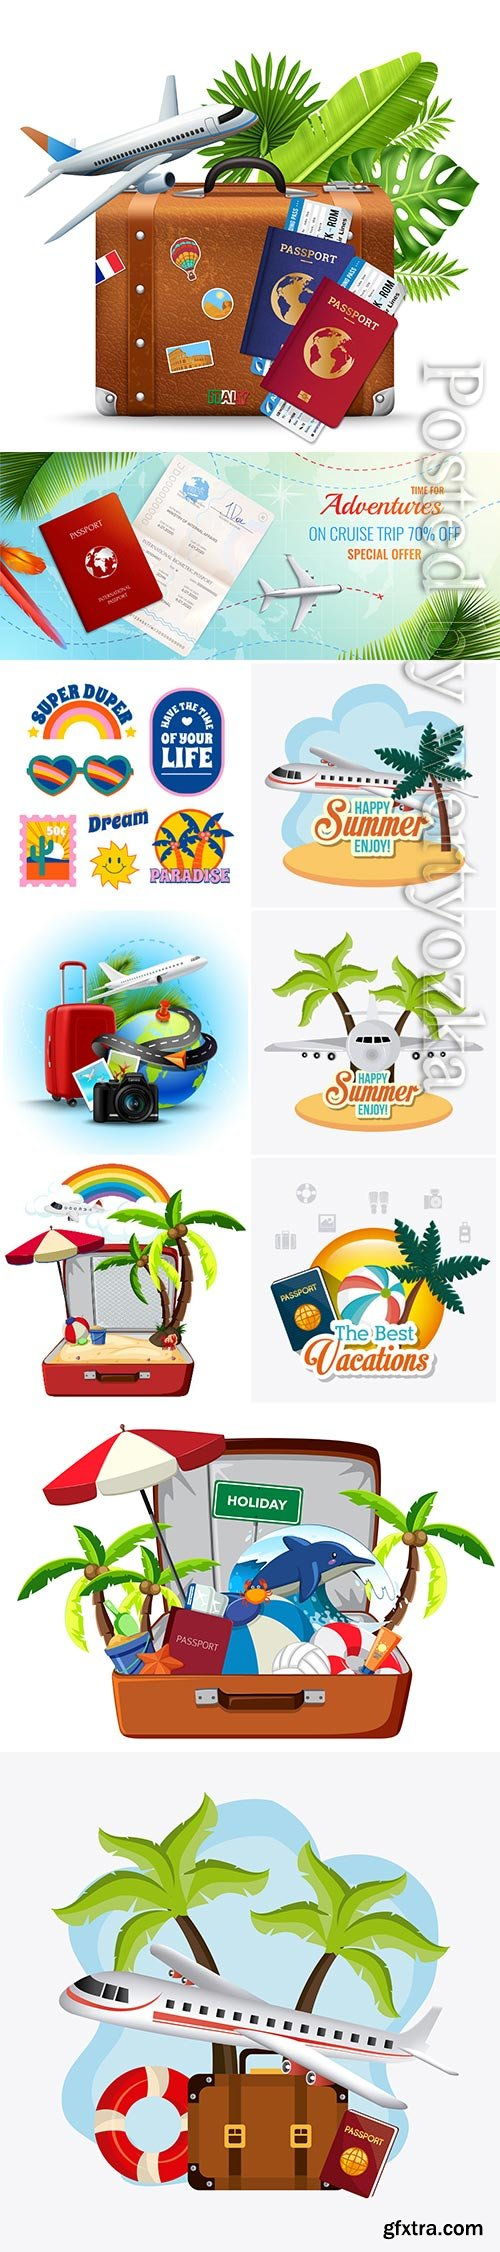 Travel vector collection illustration